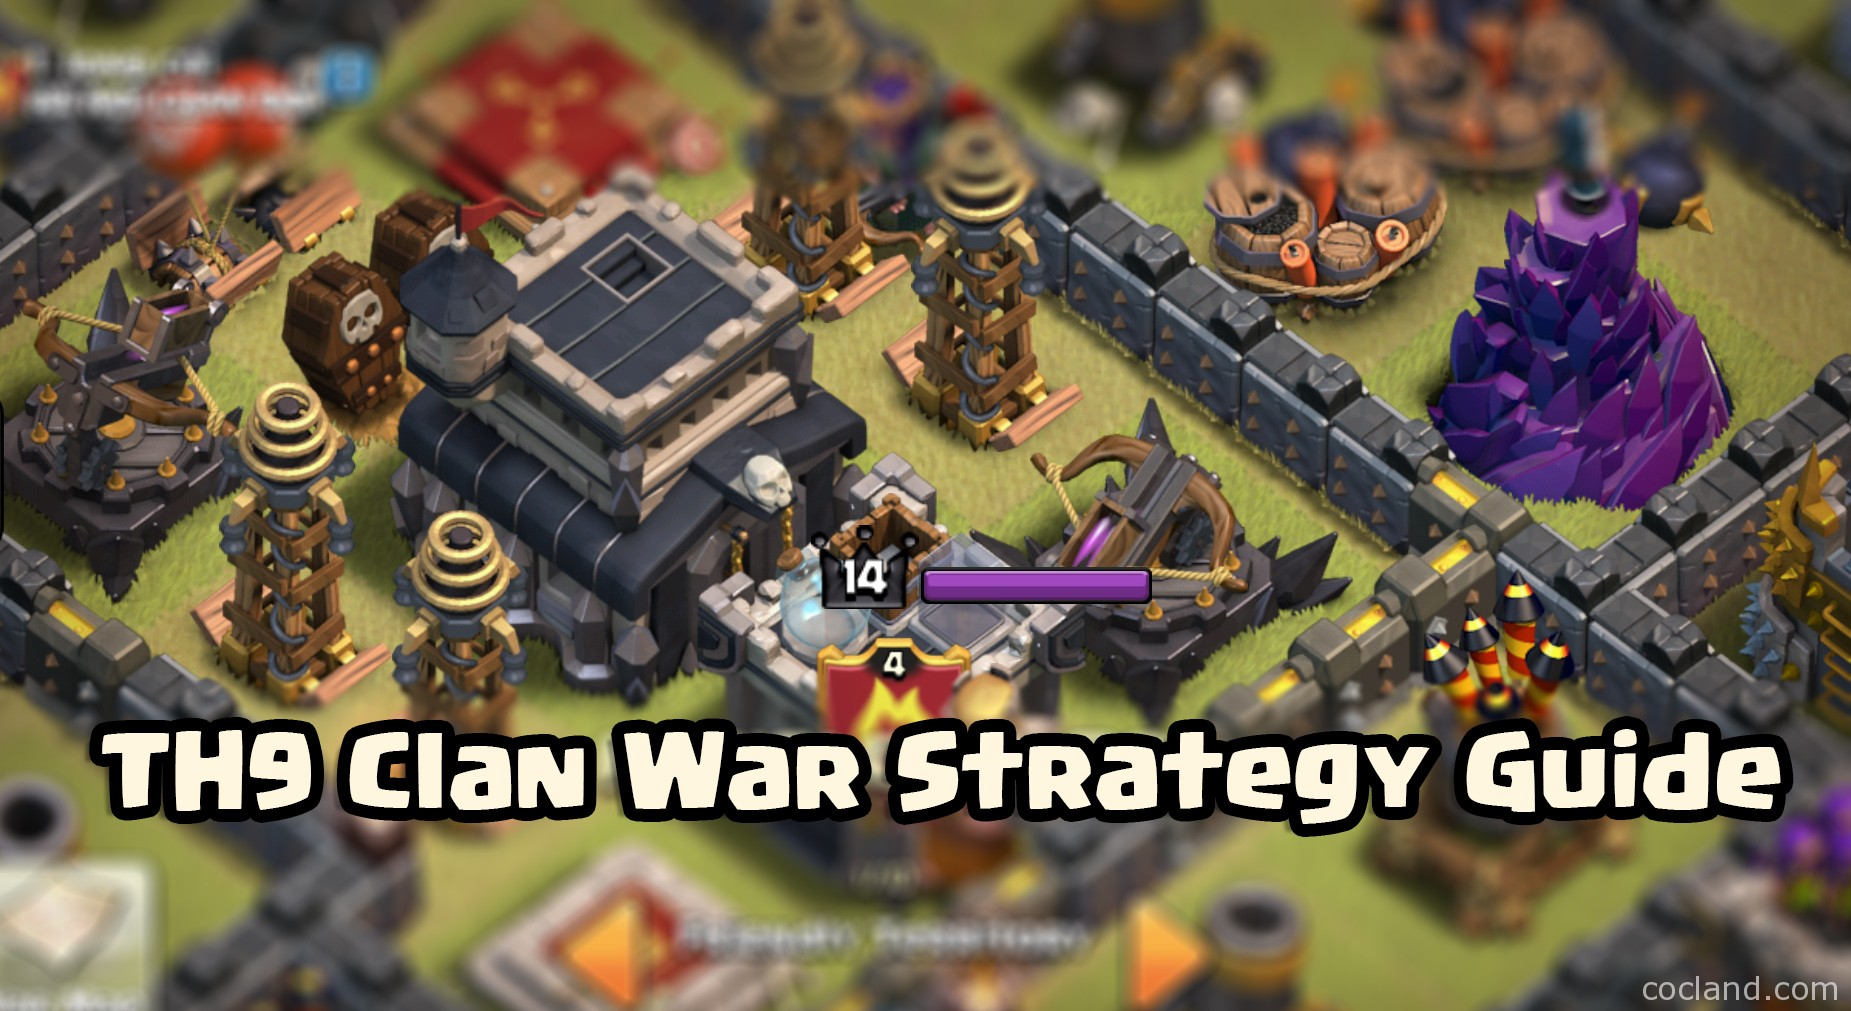 Th9 clan war strategy guide episode one clash of clans land